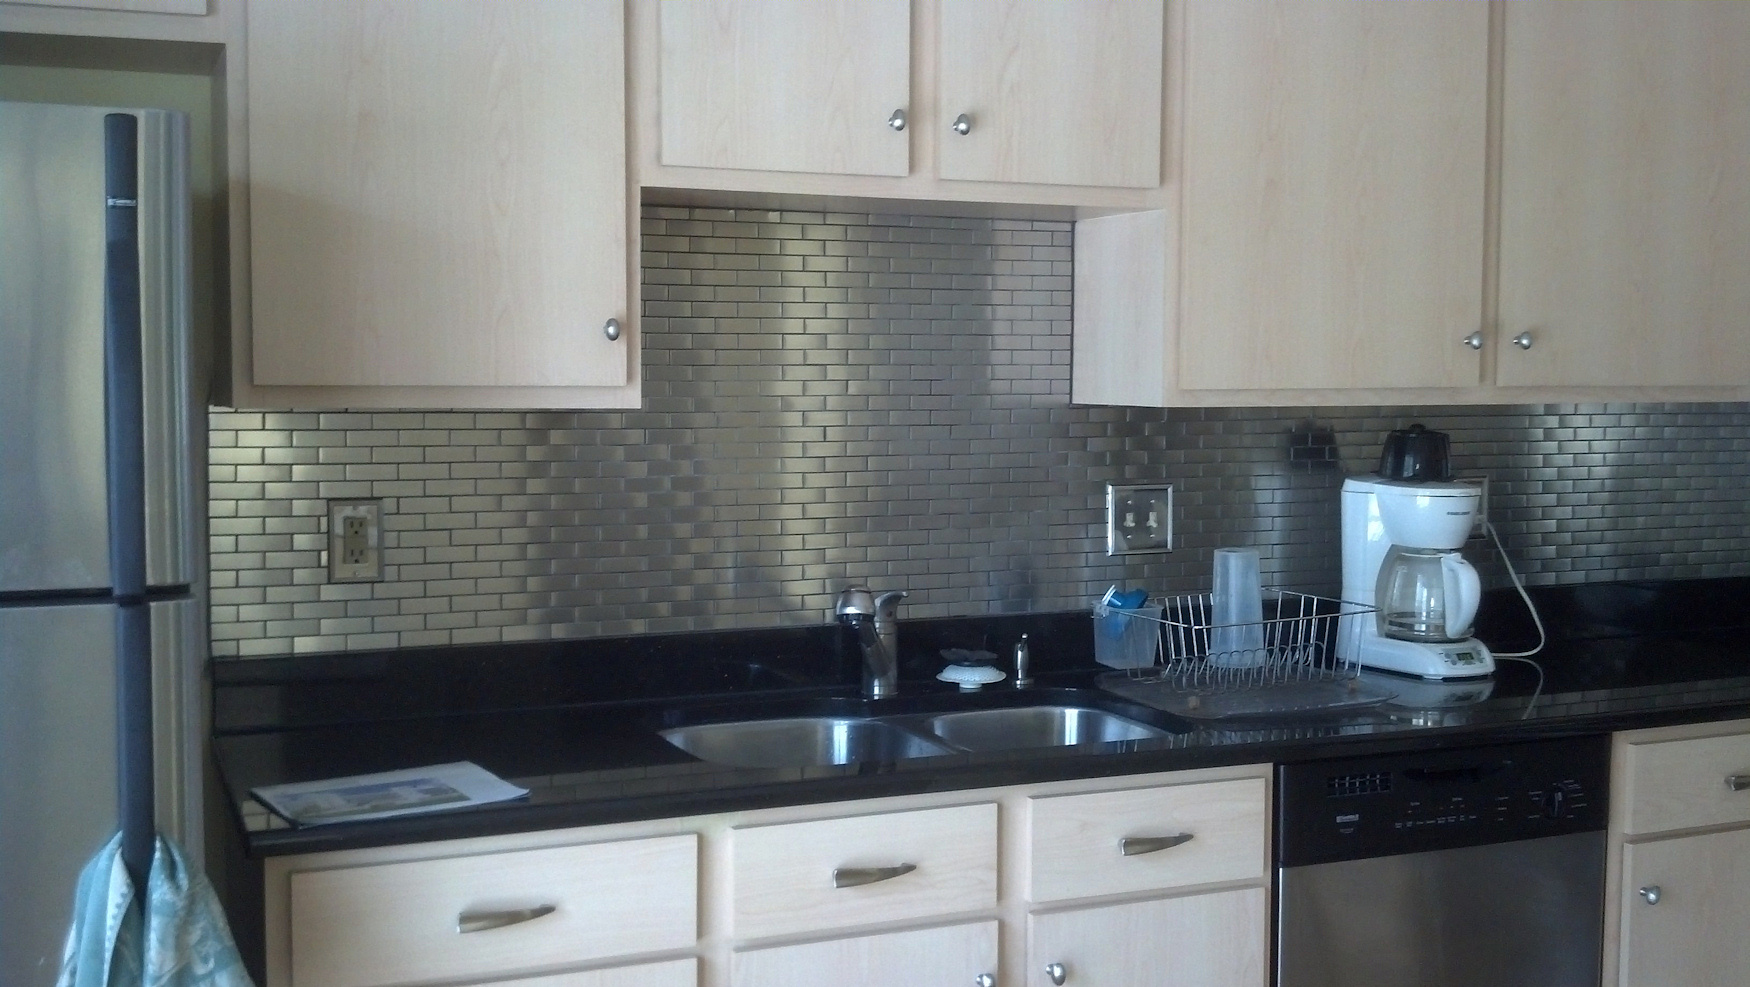 Ikea stainless steel backsplash the point pluses homesfeed for Black kitchen backsplash